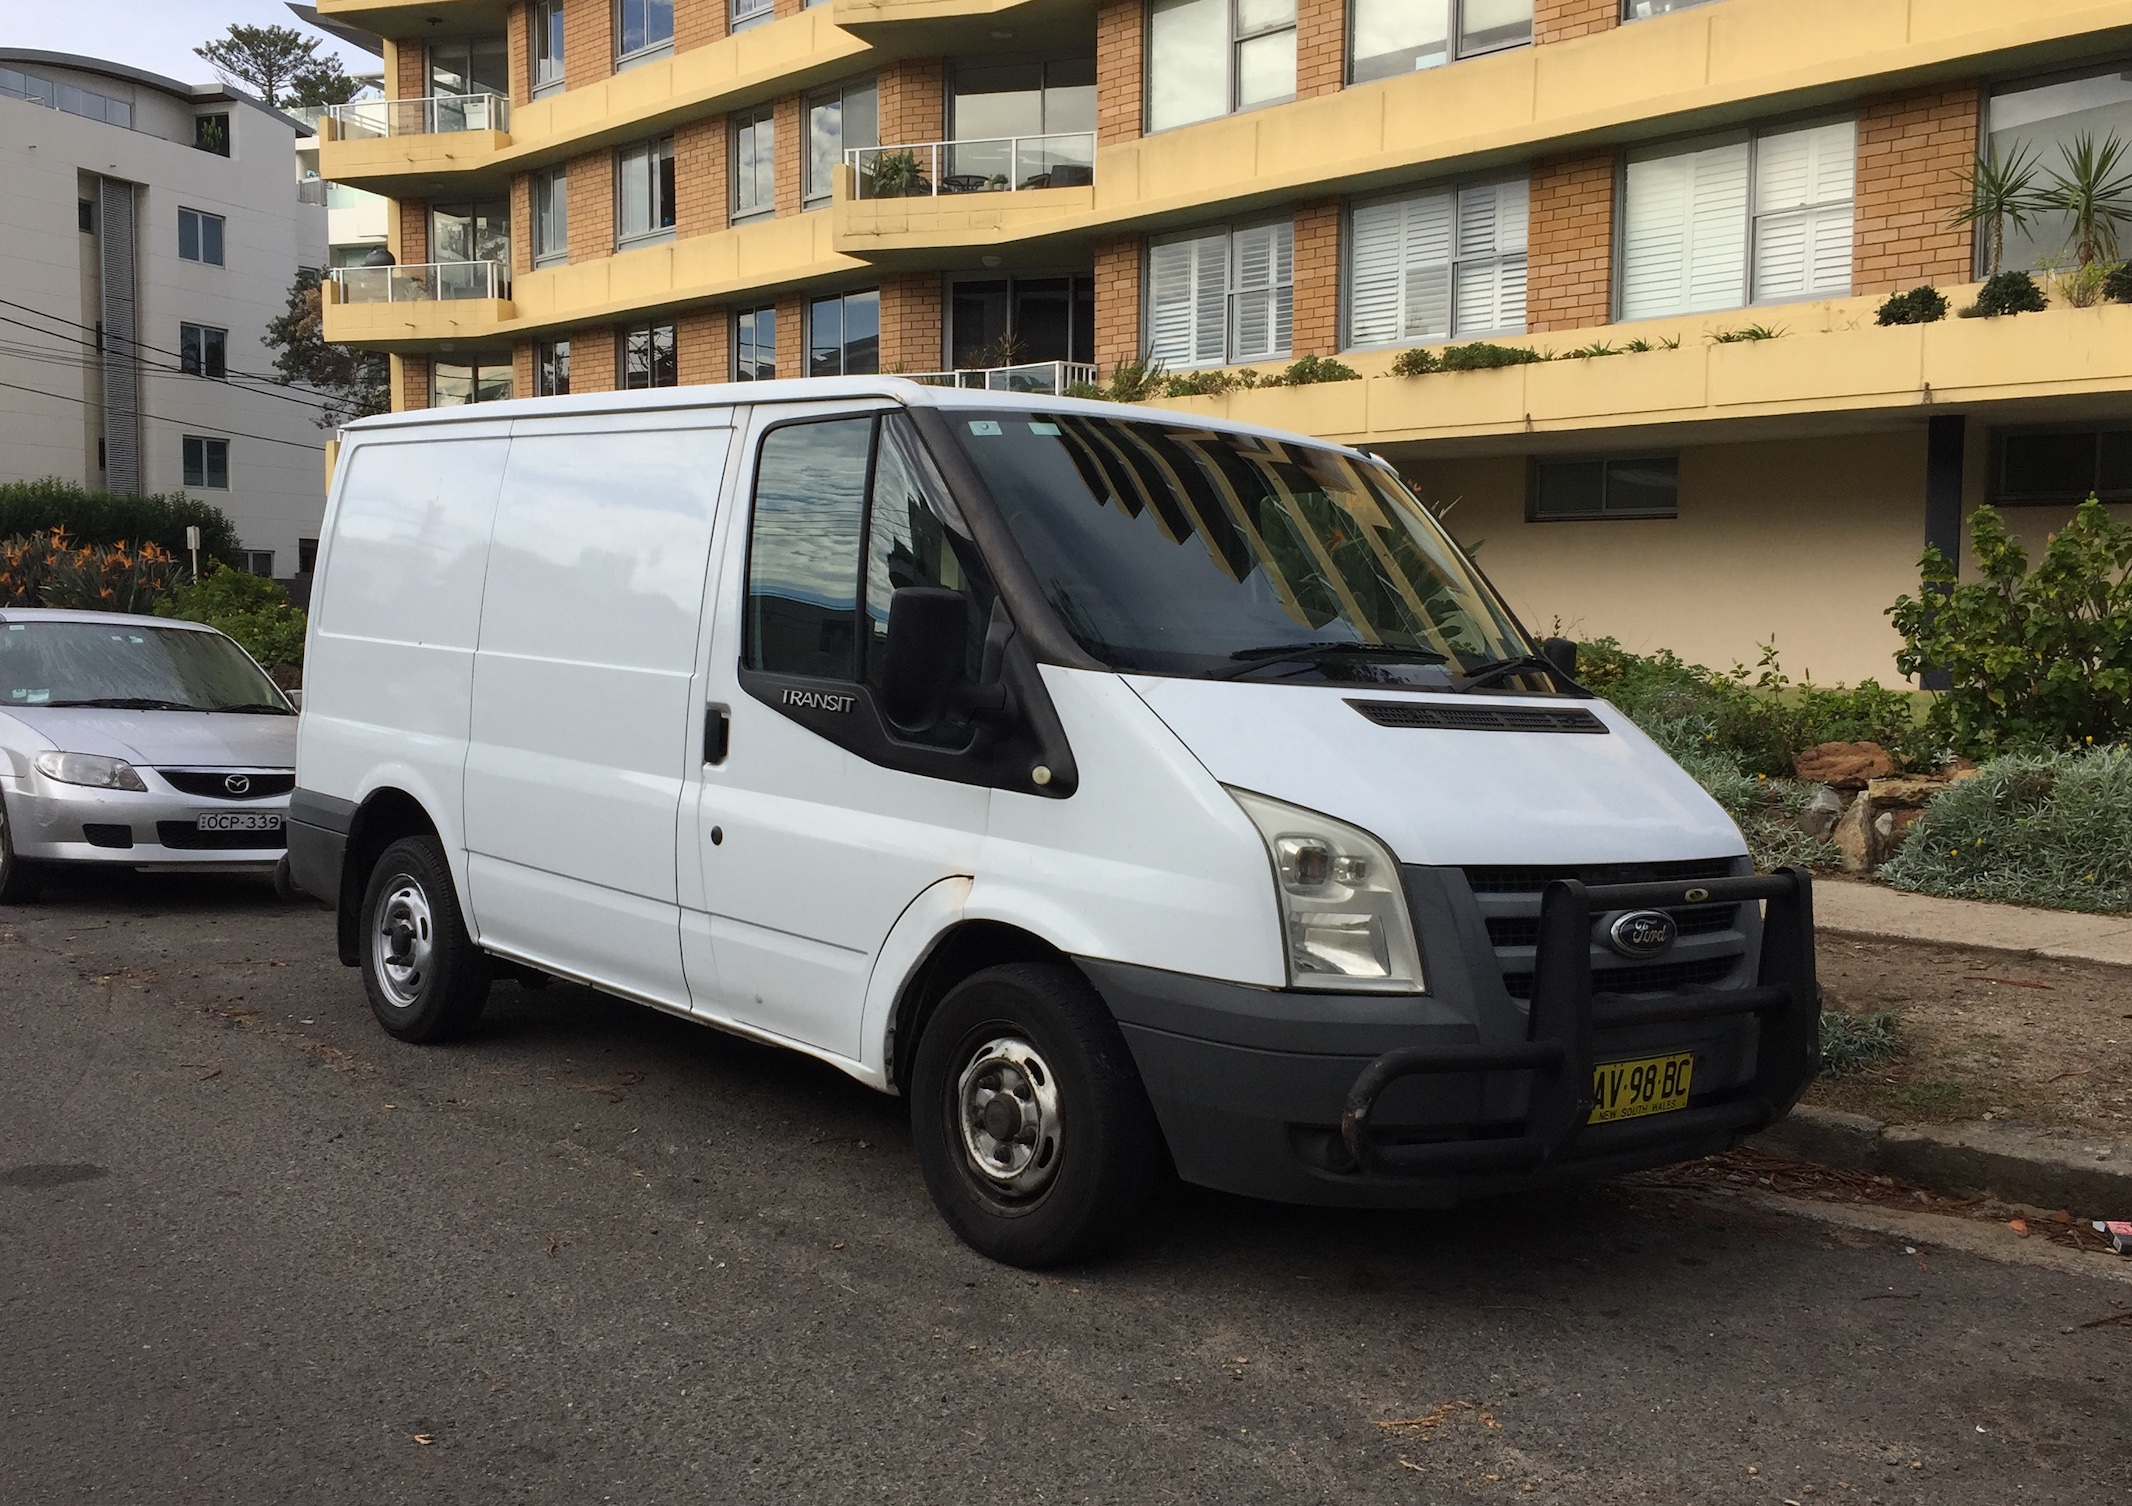 Picture of Manuela's 2008 Ford Transit